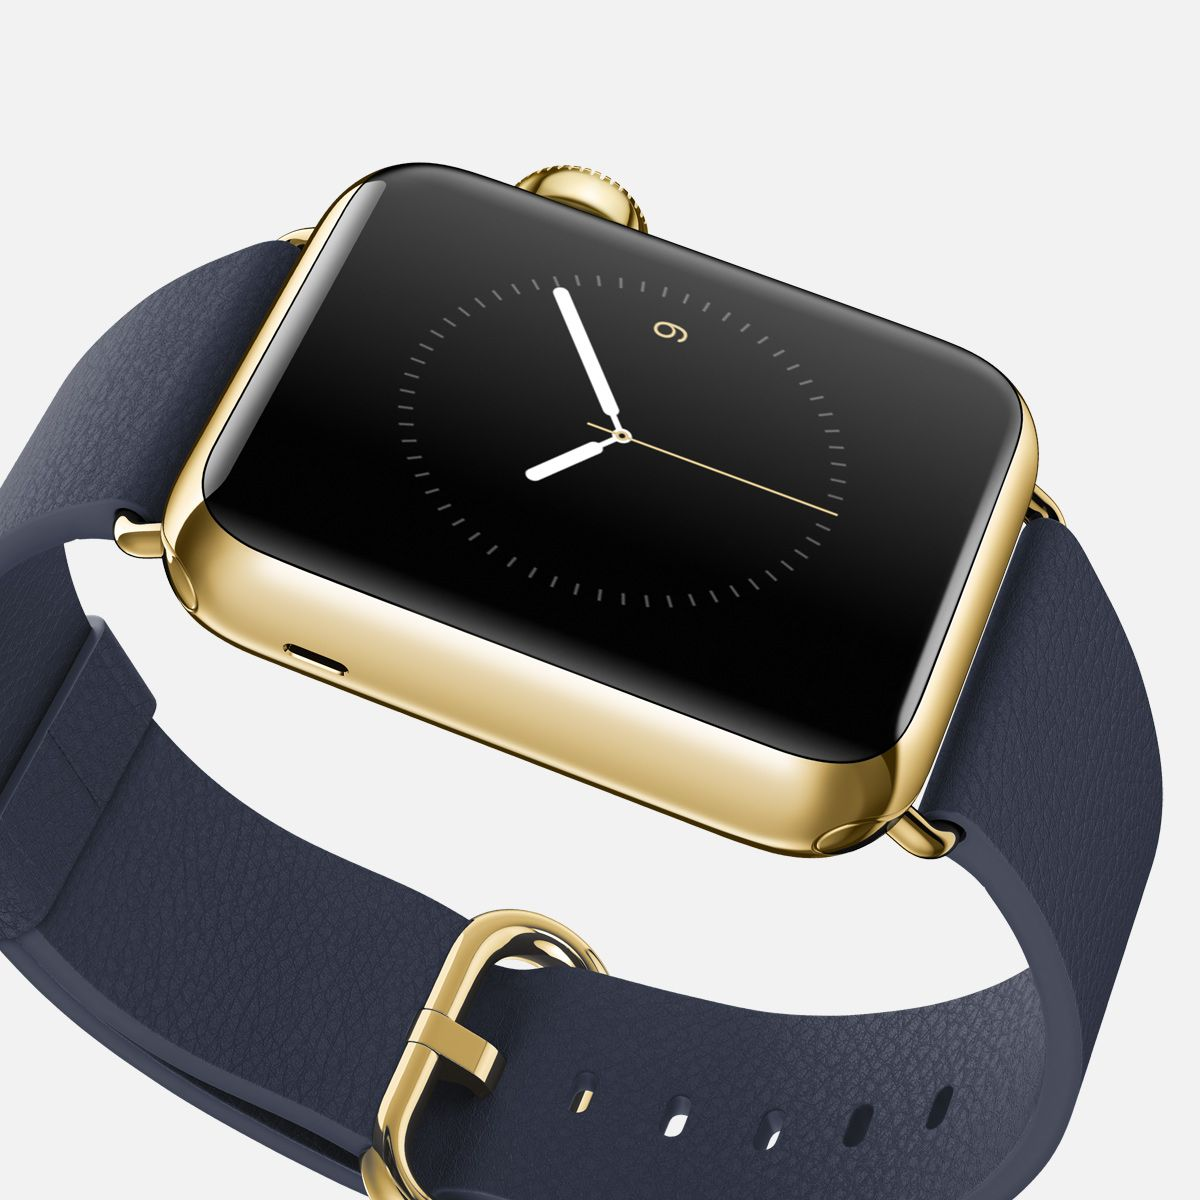 01d867fda17 Apple - Apple Watch - Edition I want one!!!